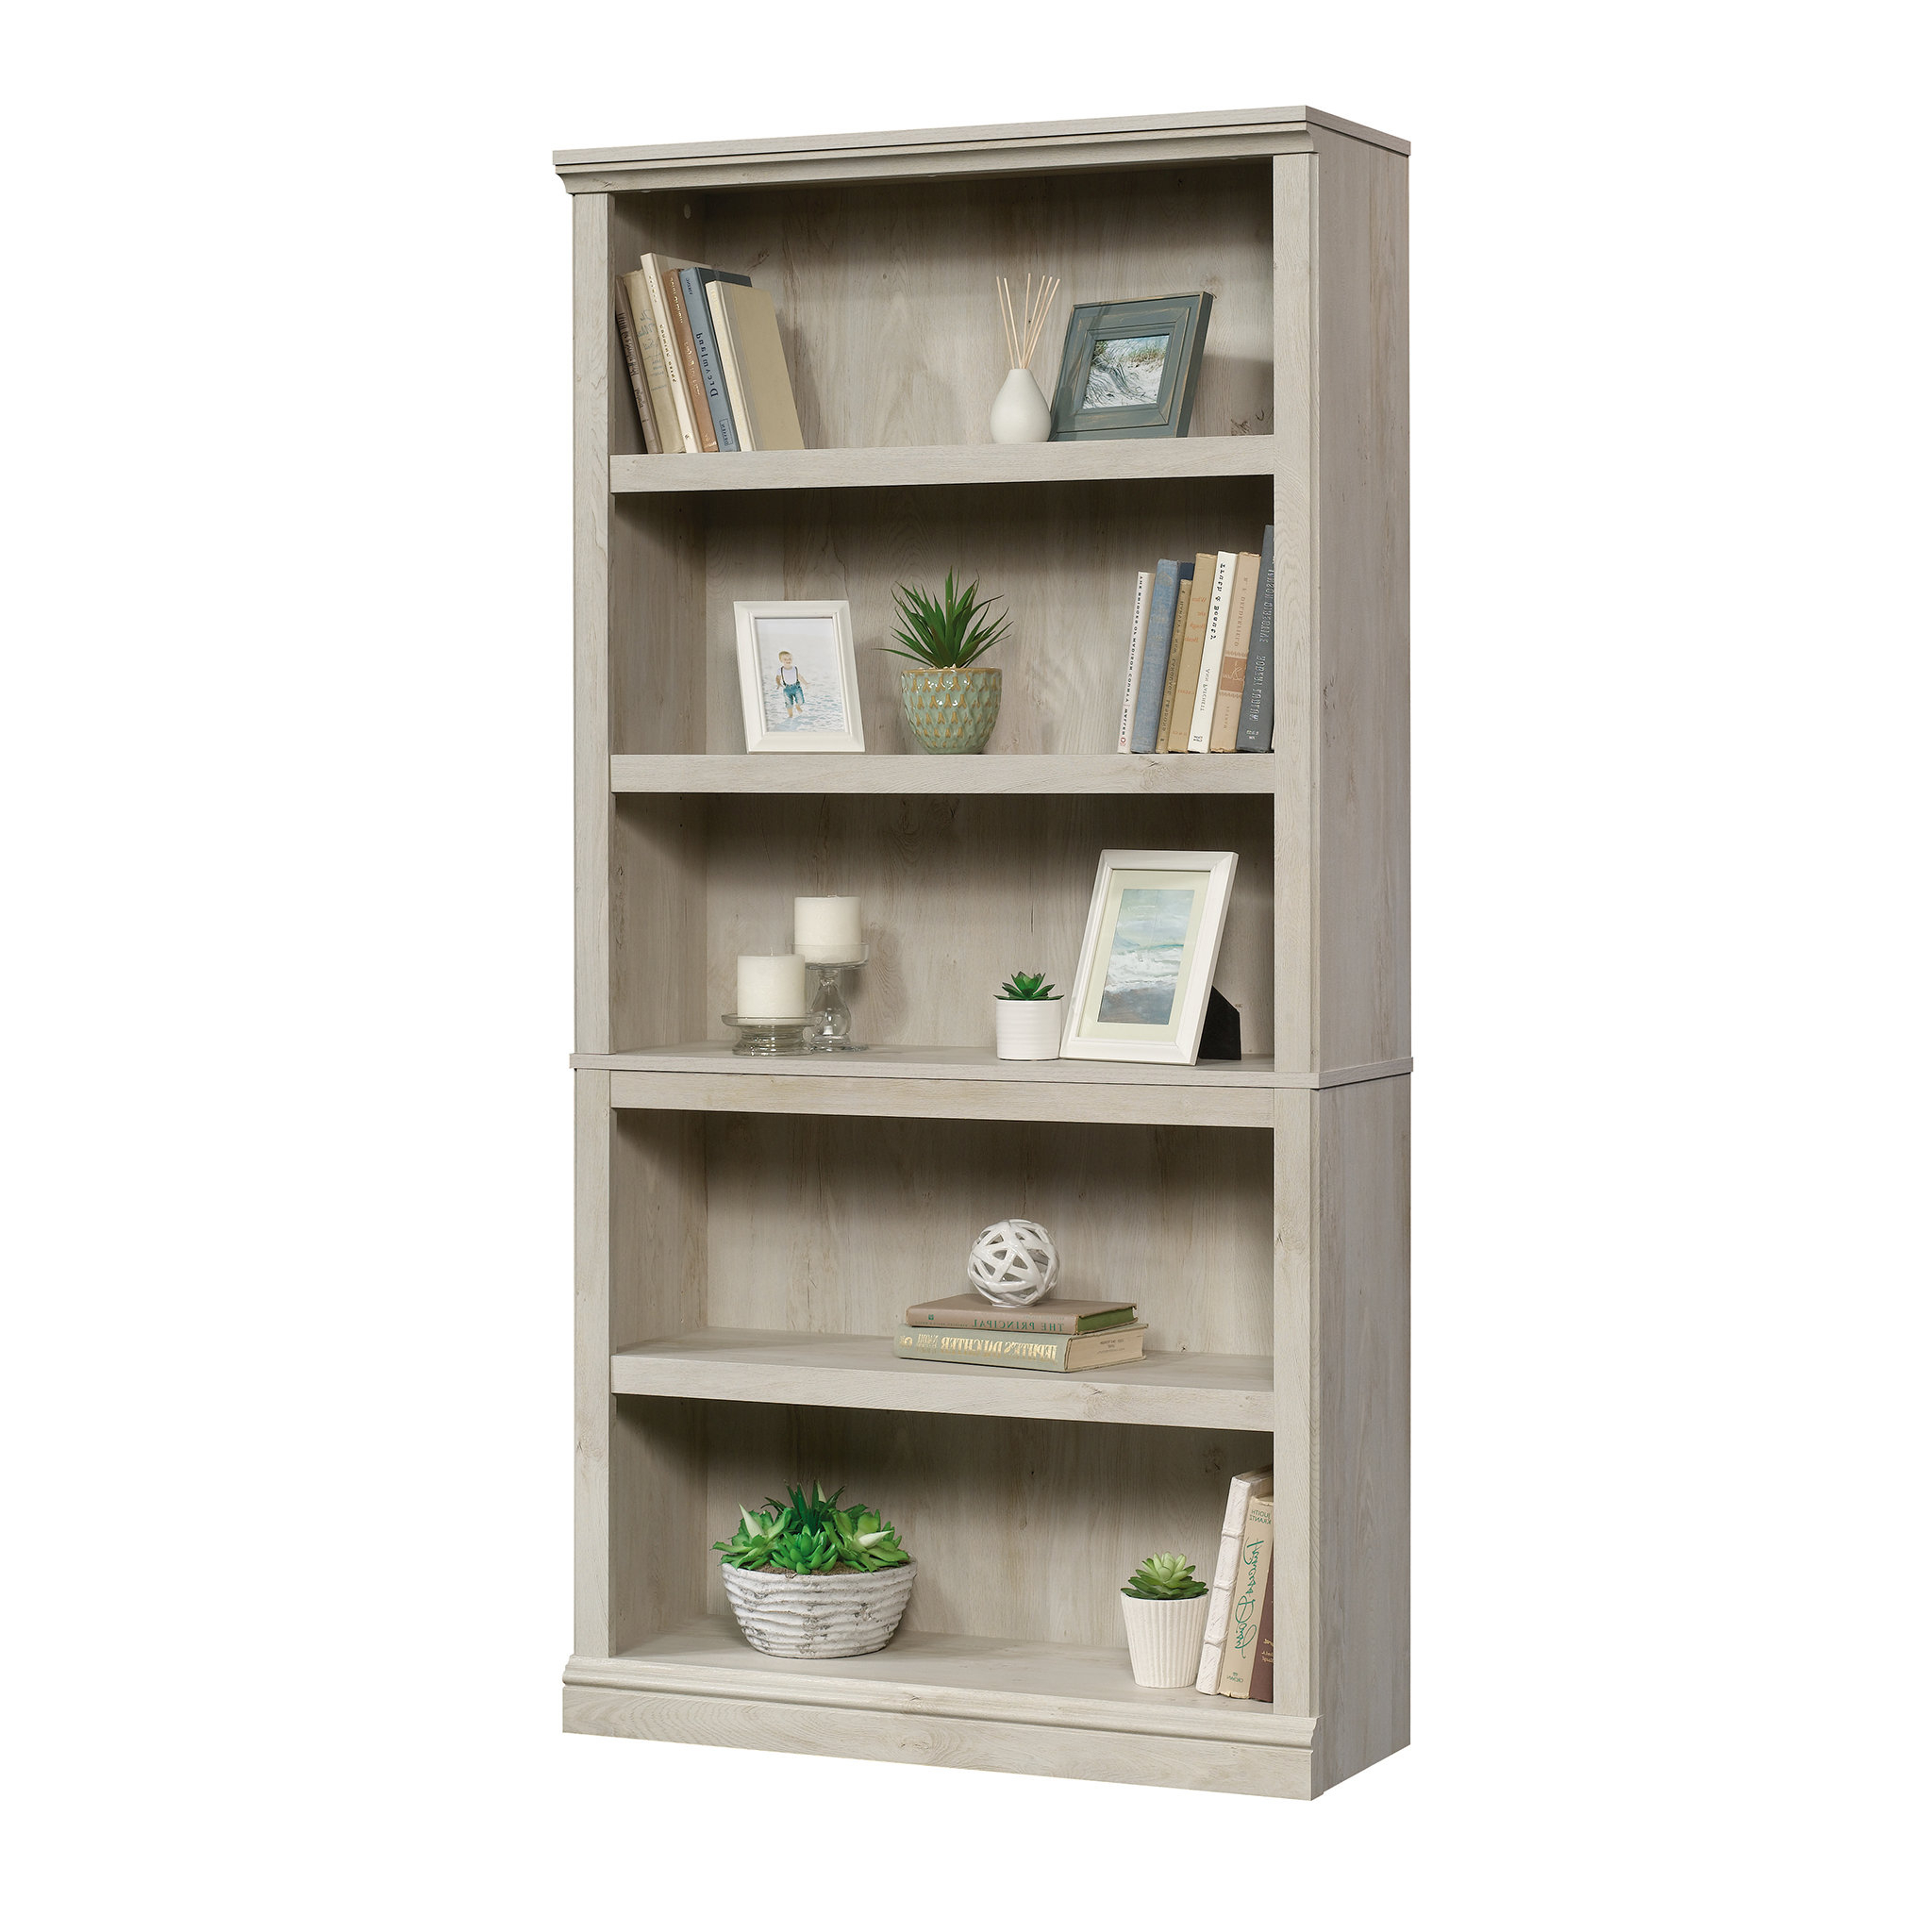 Best And Newest Abigail Standard Bookcase Inside Abigail Standard Bookcases (Gallery 13 of 20)